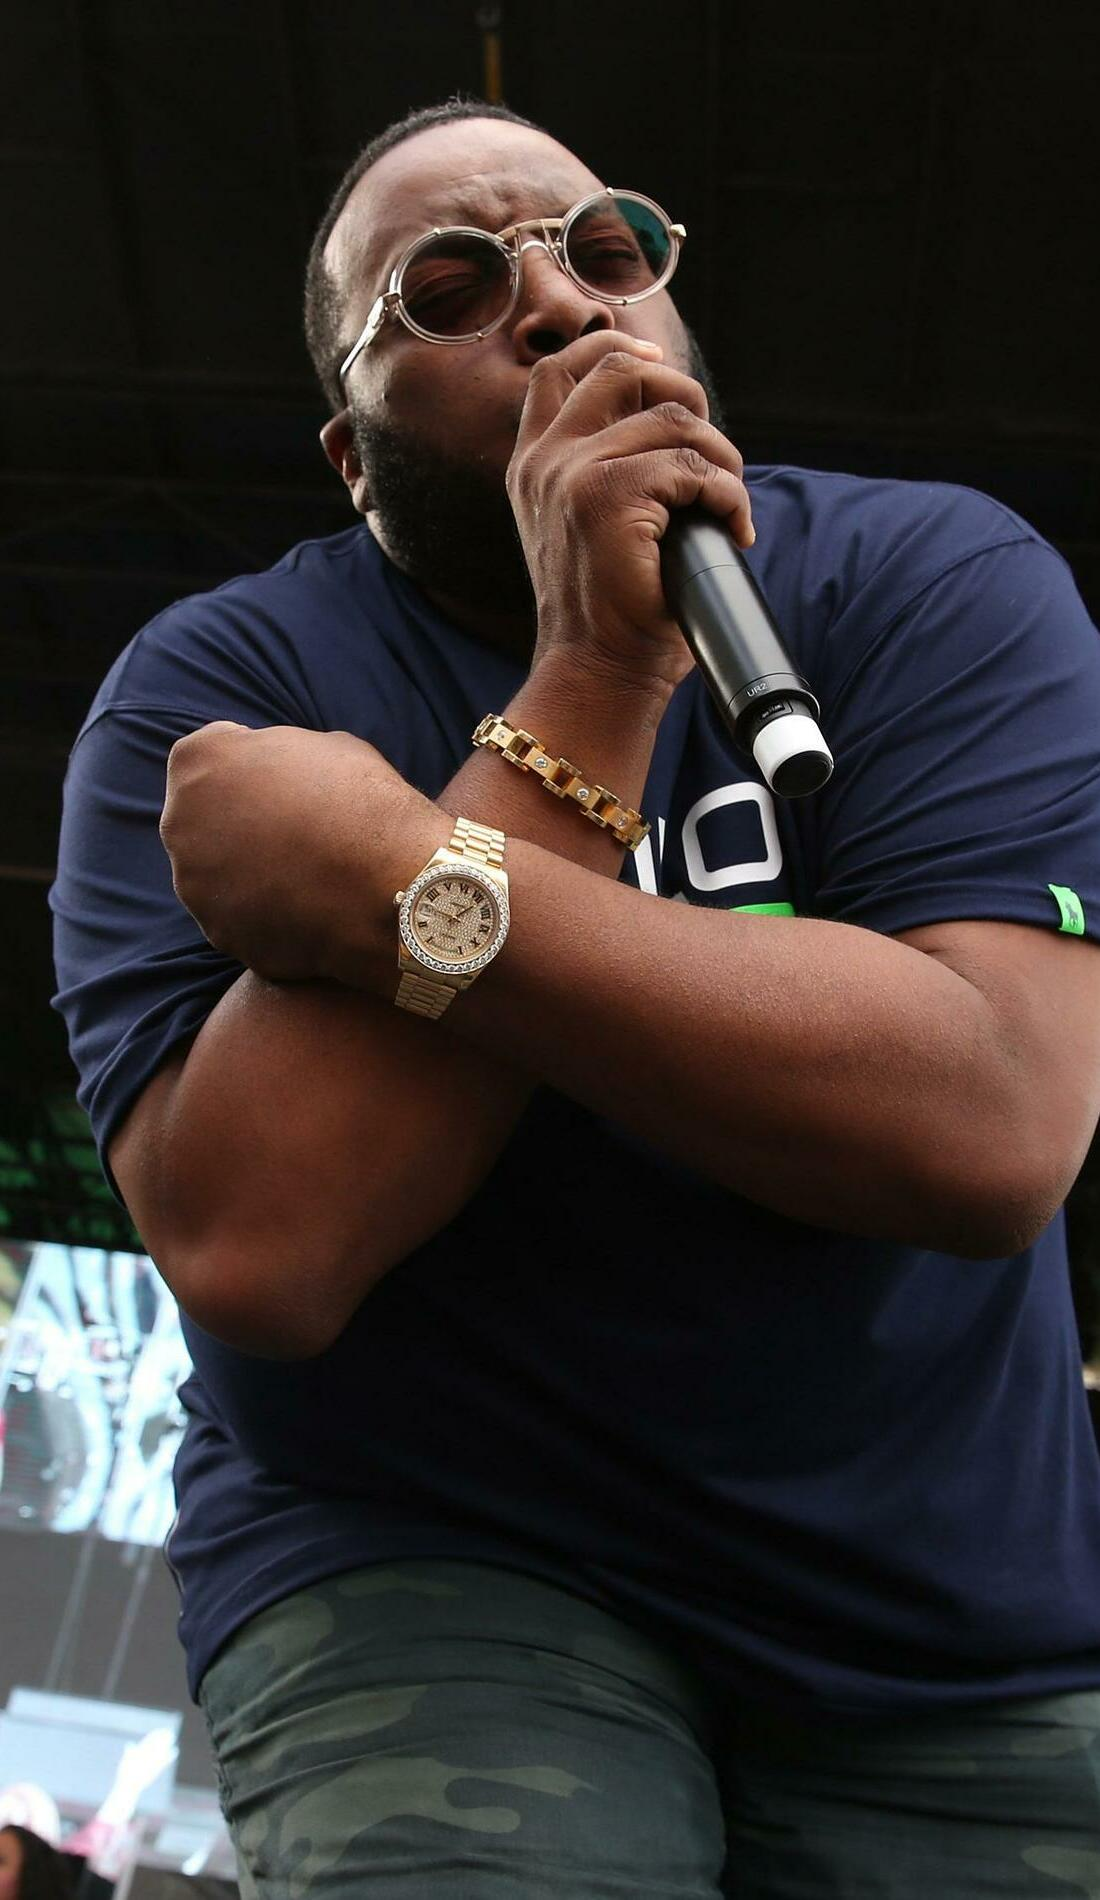 A Marvin Sapp live event